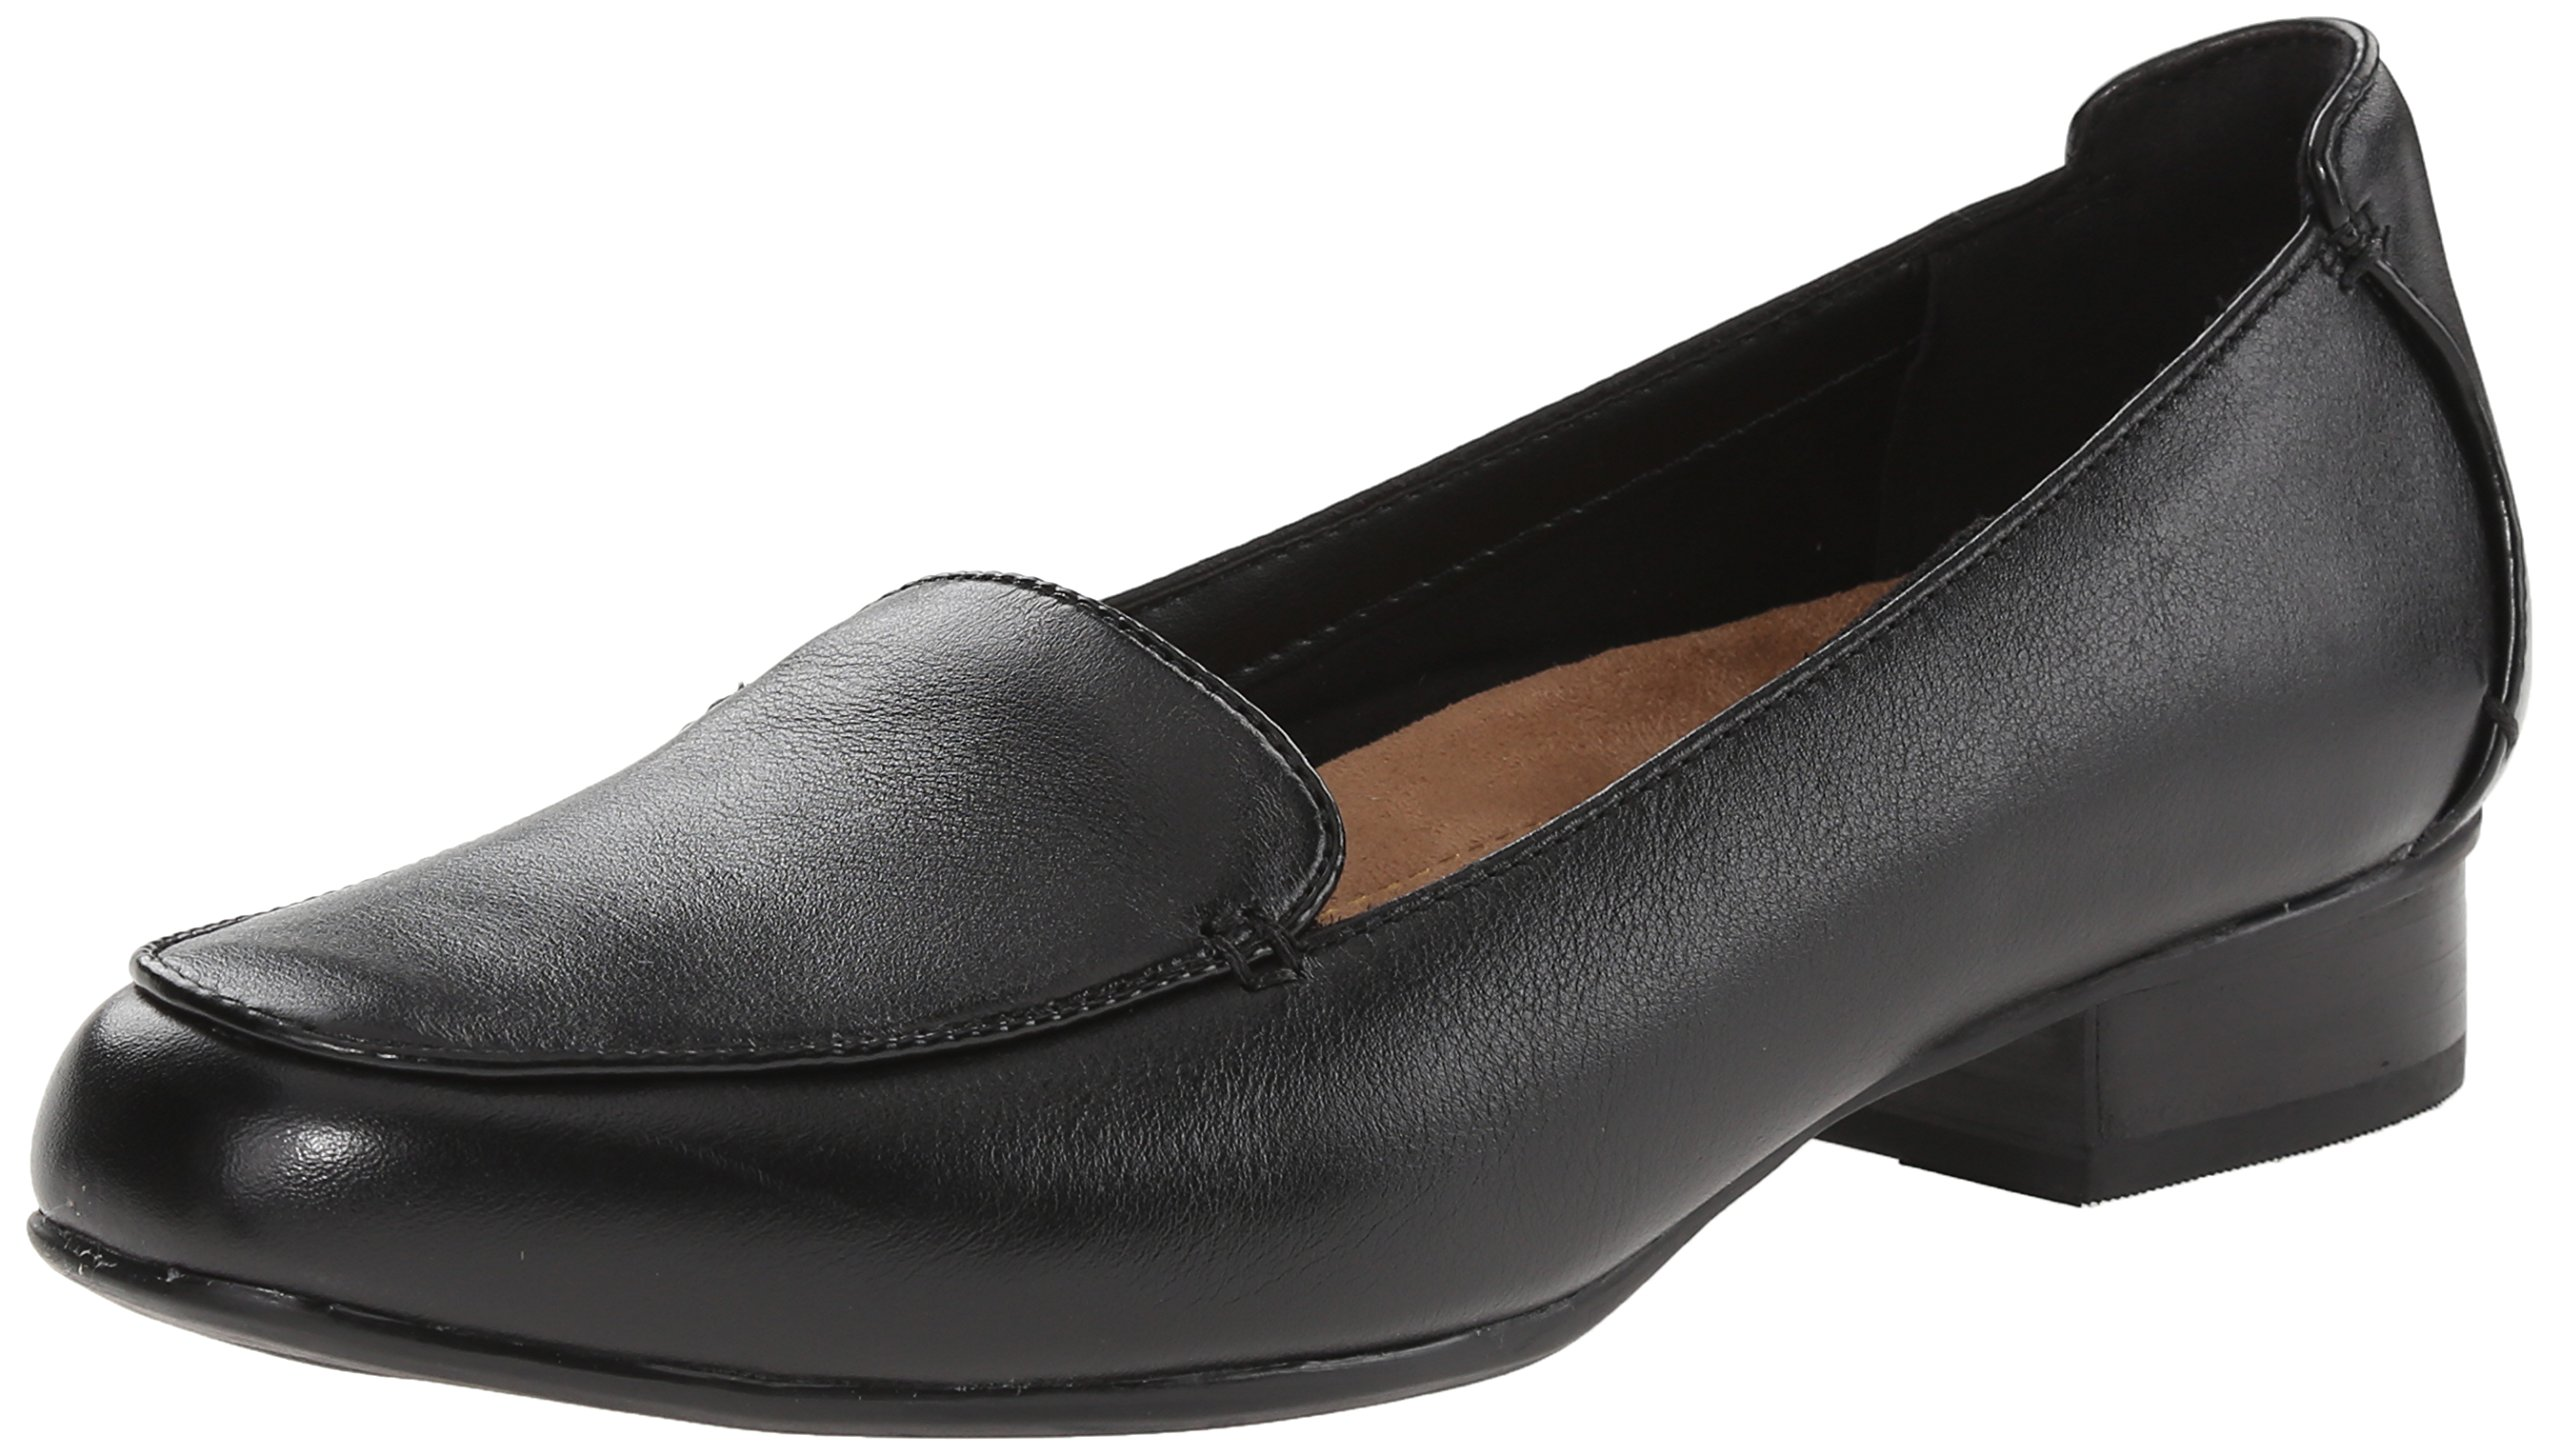 CLARKS Women's Keesha Luca Shoe, Black Leather, 8.5 M US